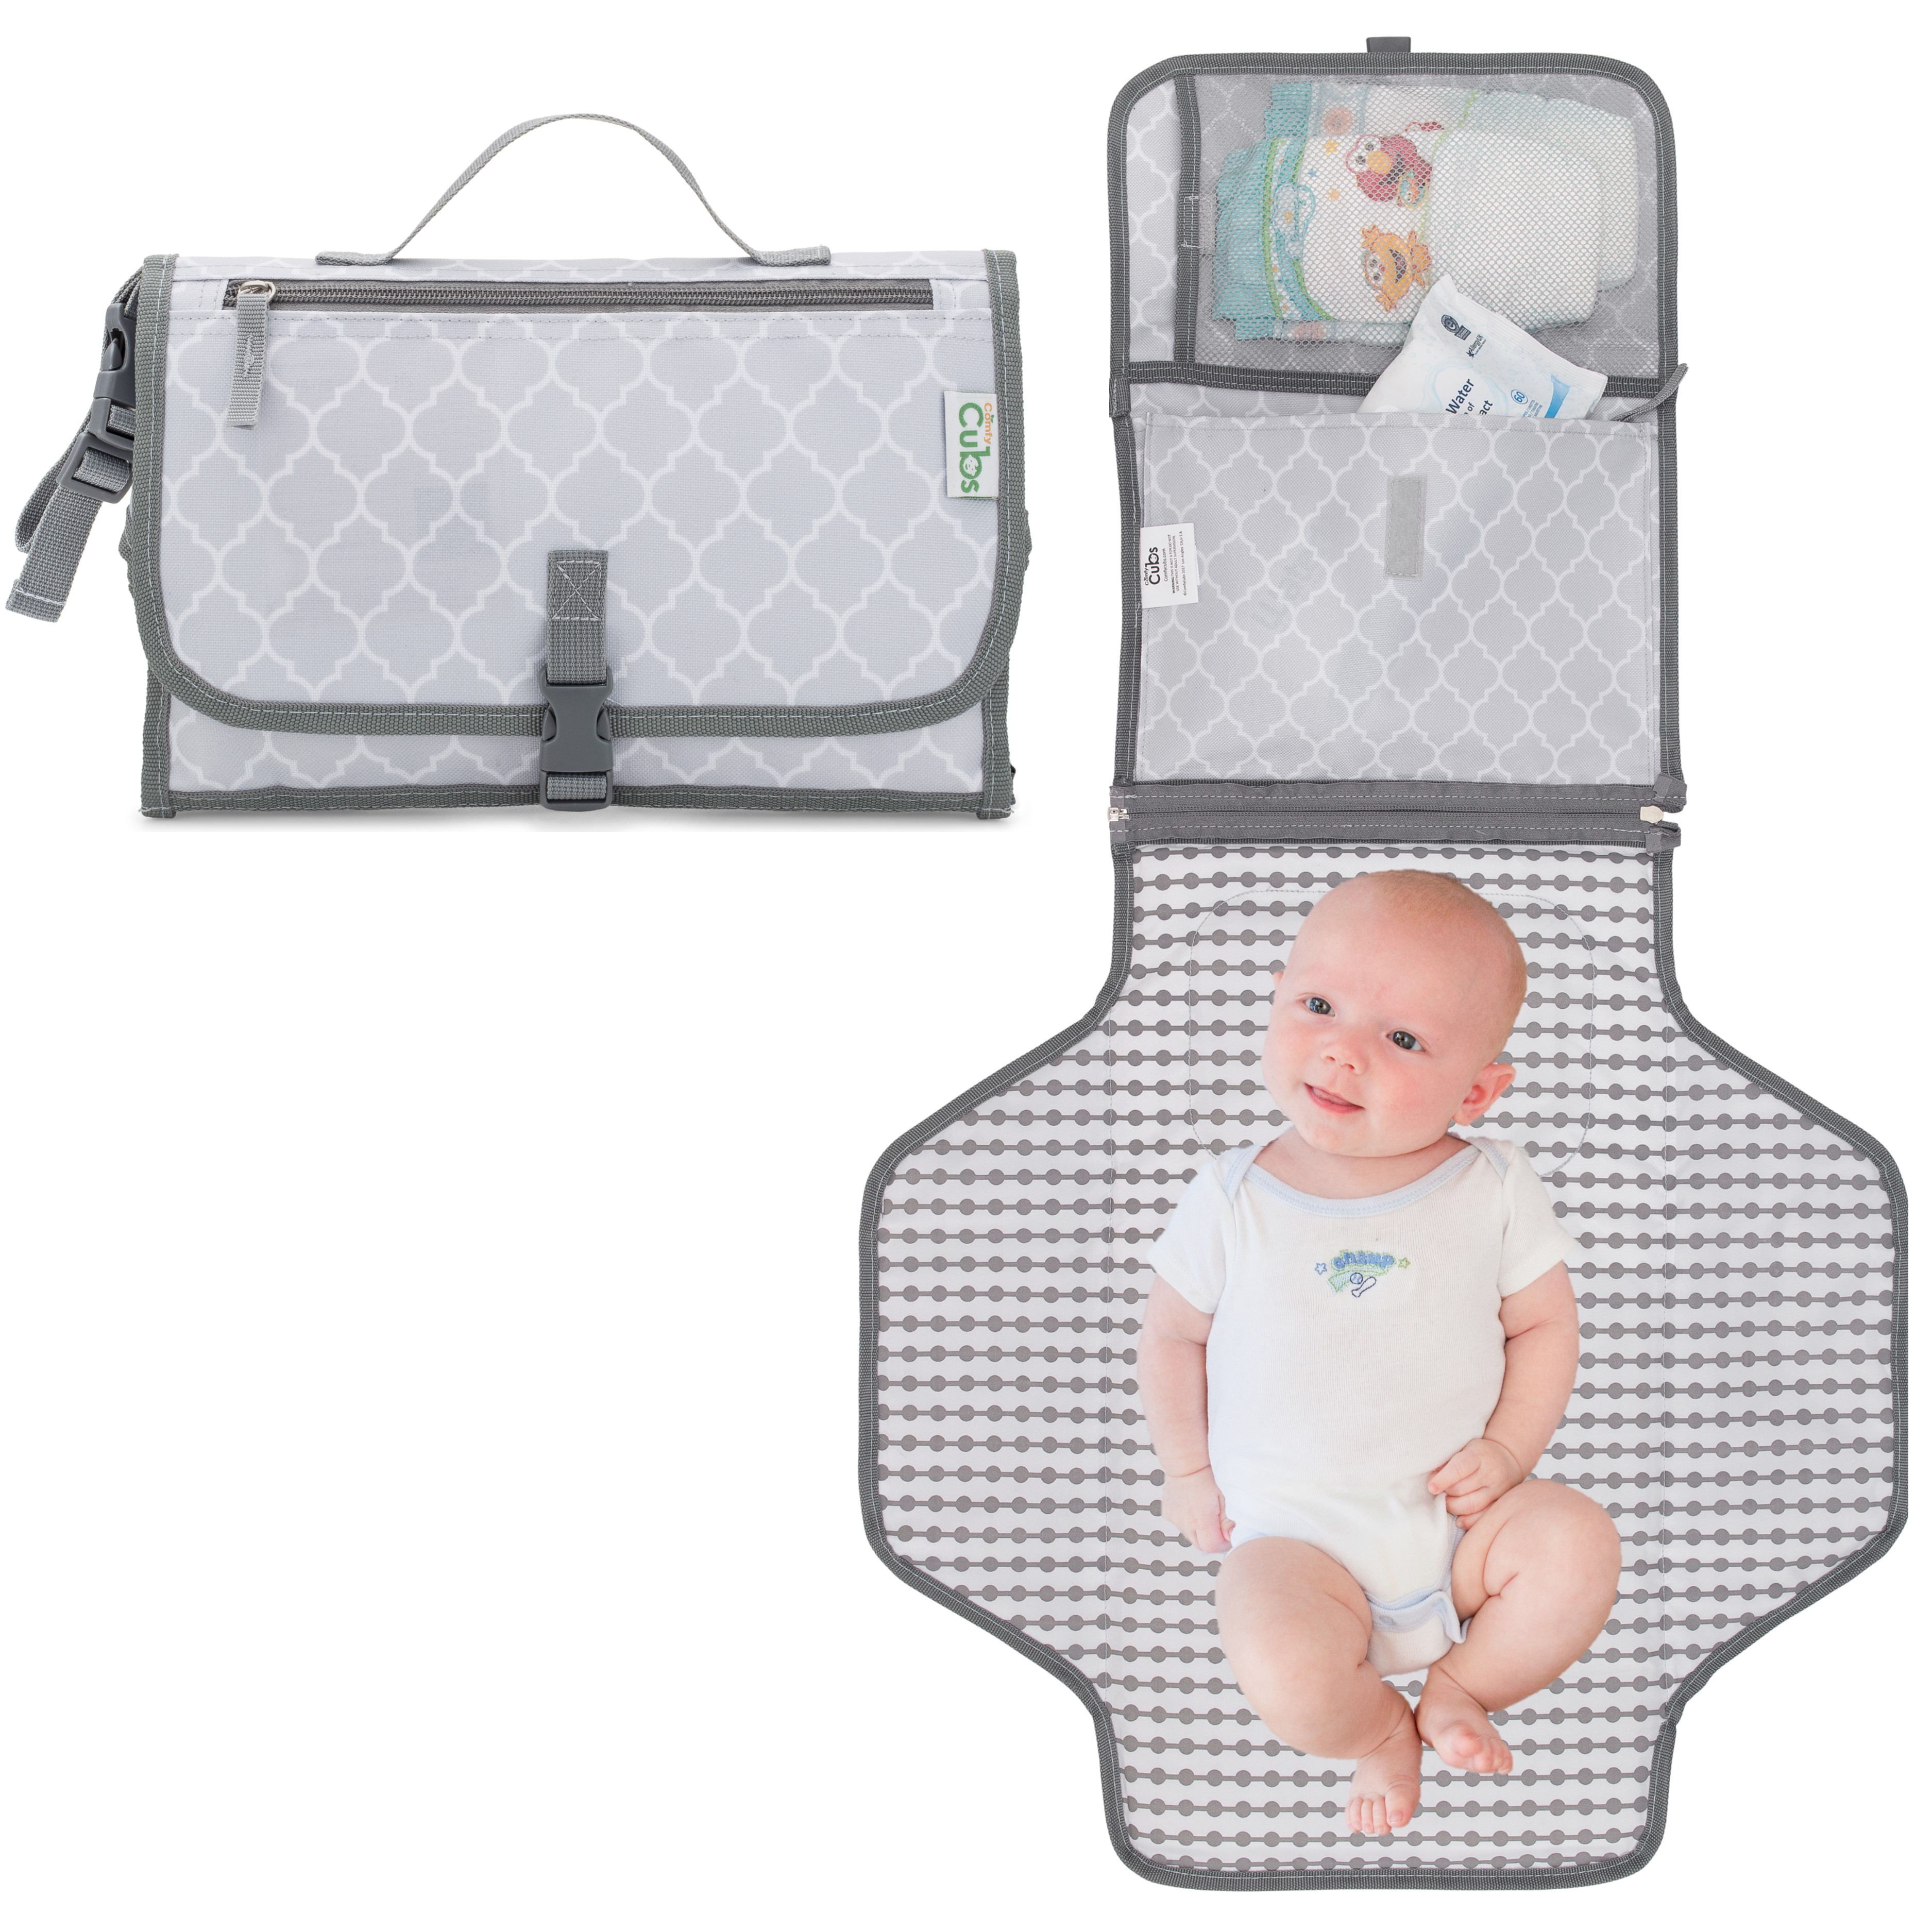 Breathable Baby Waterproof Portable Diaper Travel Changing Mat Storage 6A